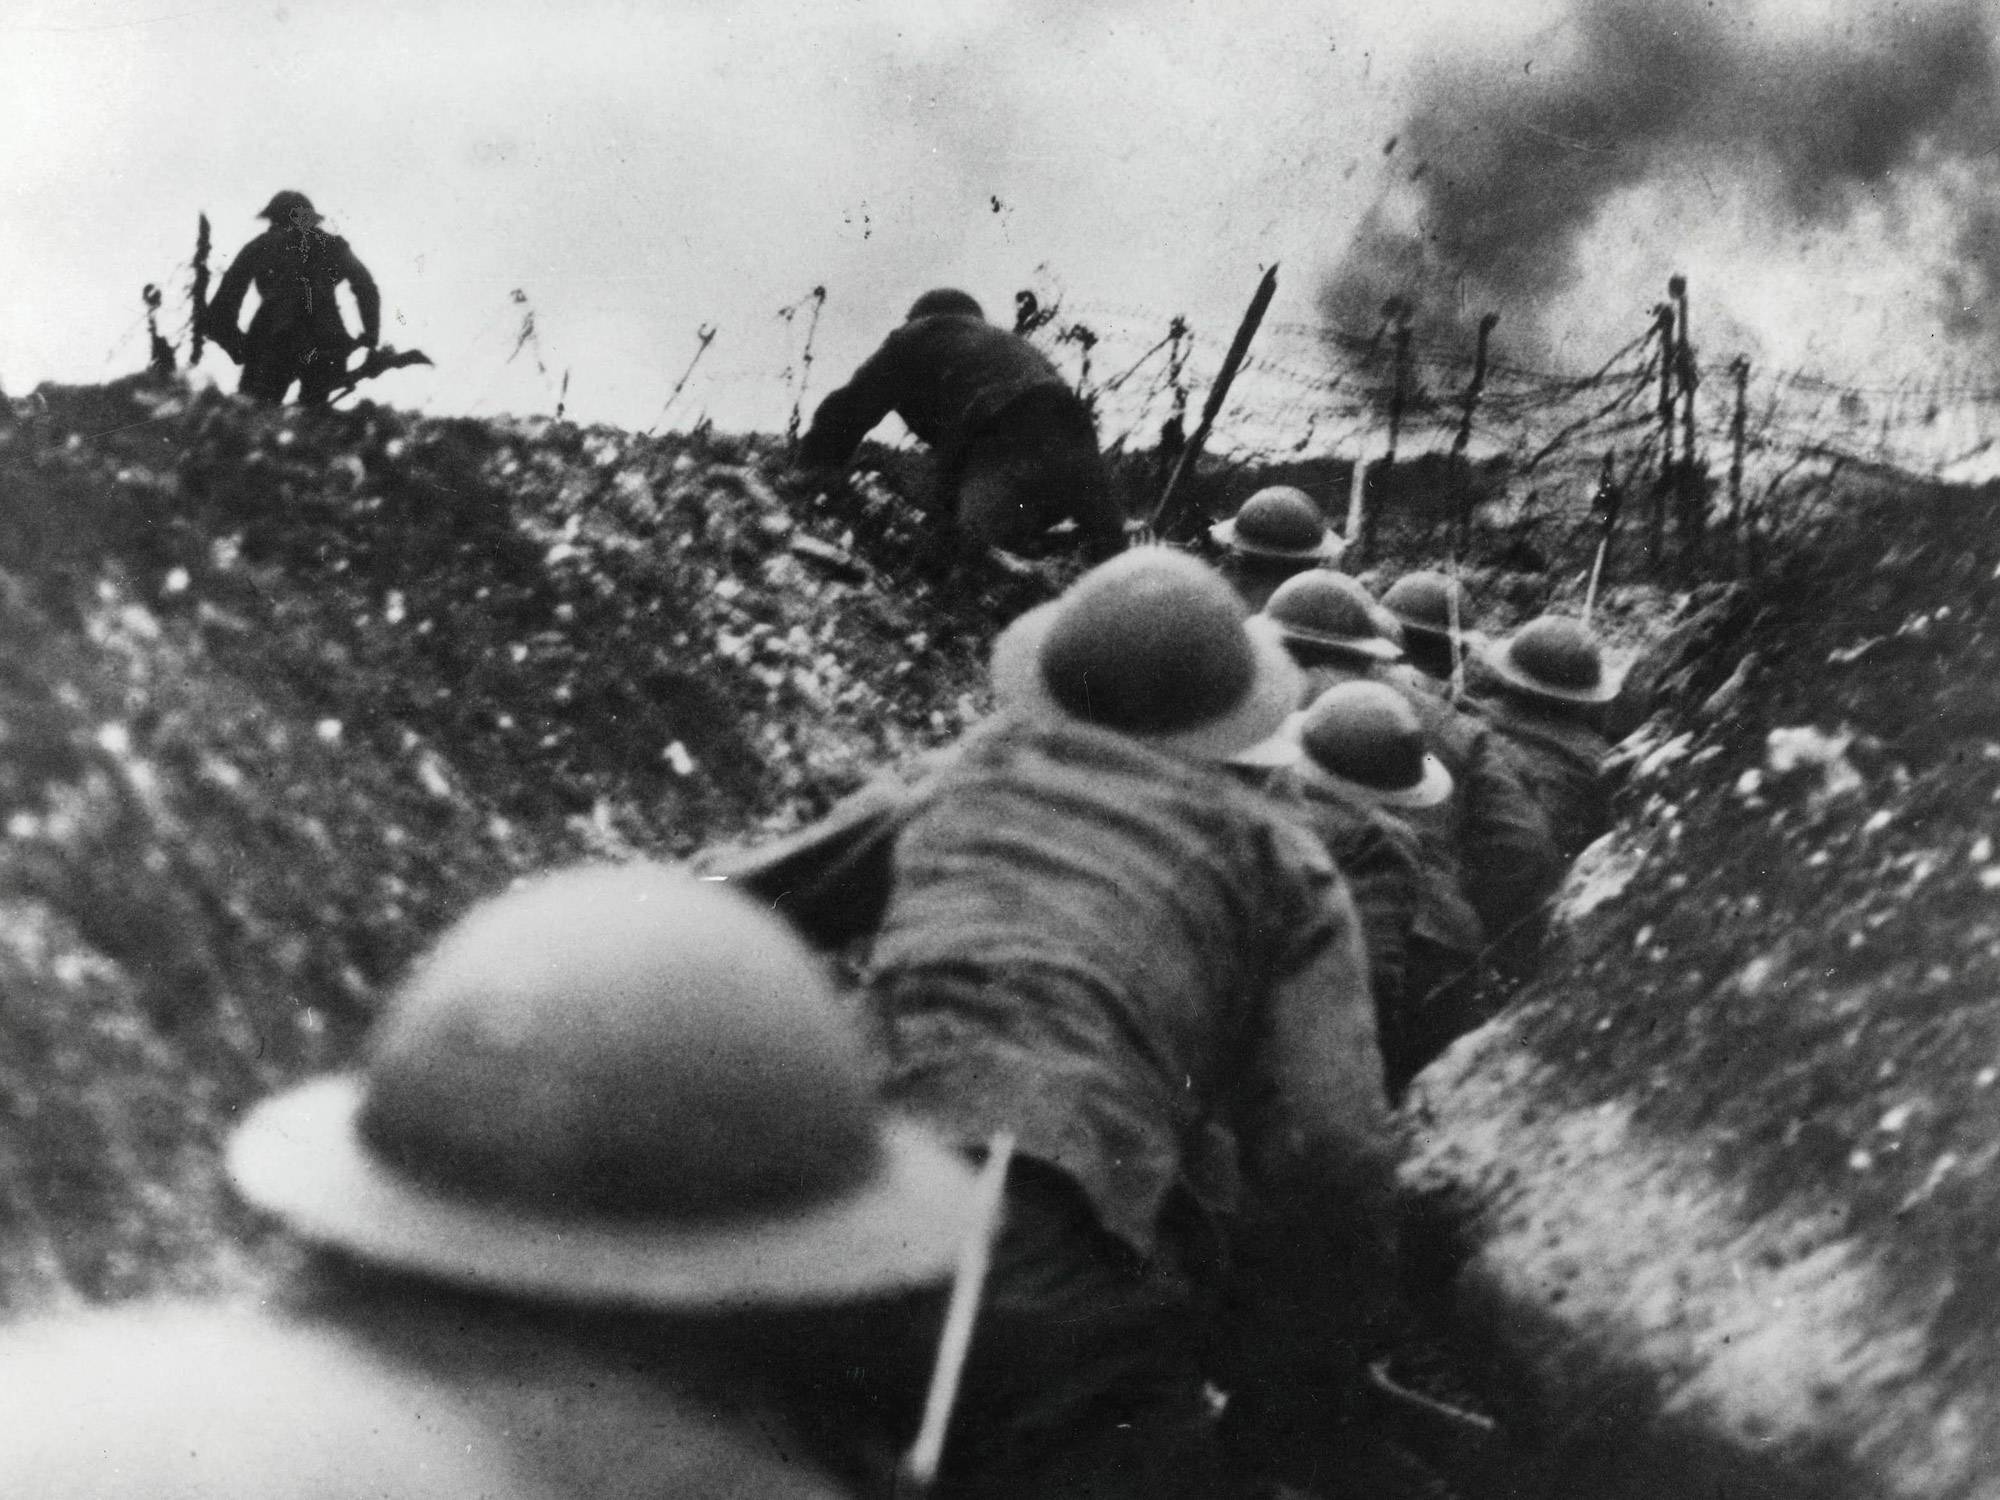 British troops preparing attack on stalemated Western Front